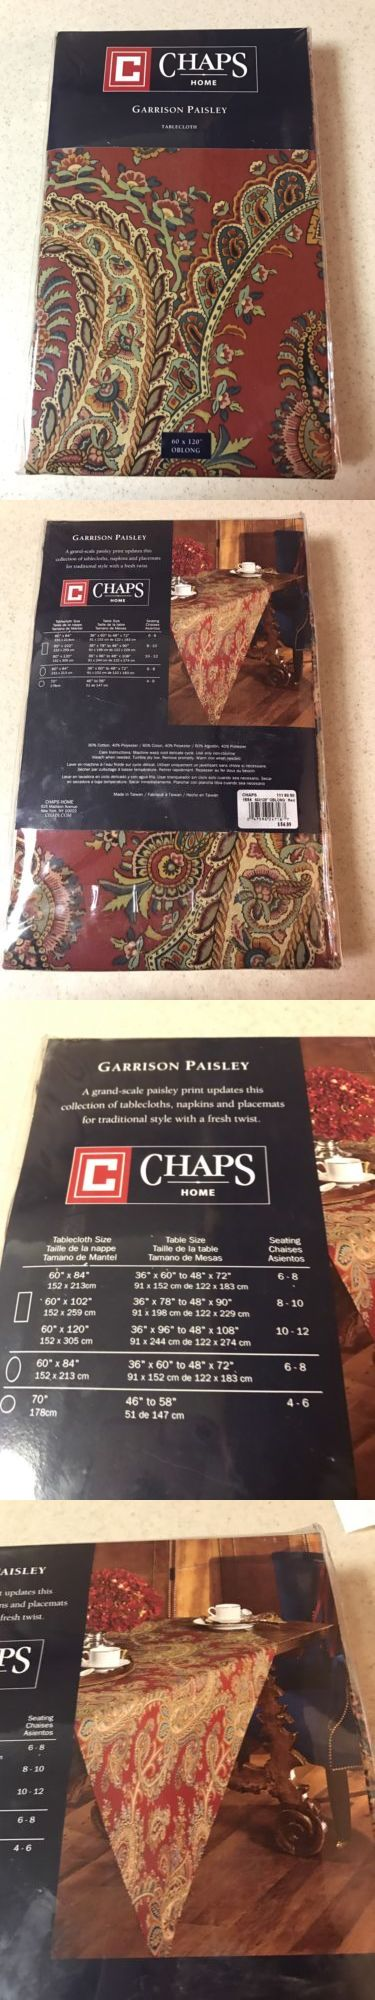 Tablecloths 20663: Chaps Home Garrison Paisley 60 X 120 Oblong Tablecloth ~ New -> BUY IT NOW ONLY: $37.99 on eBay!